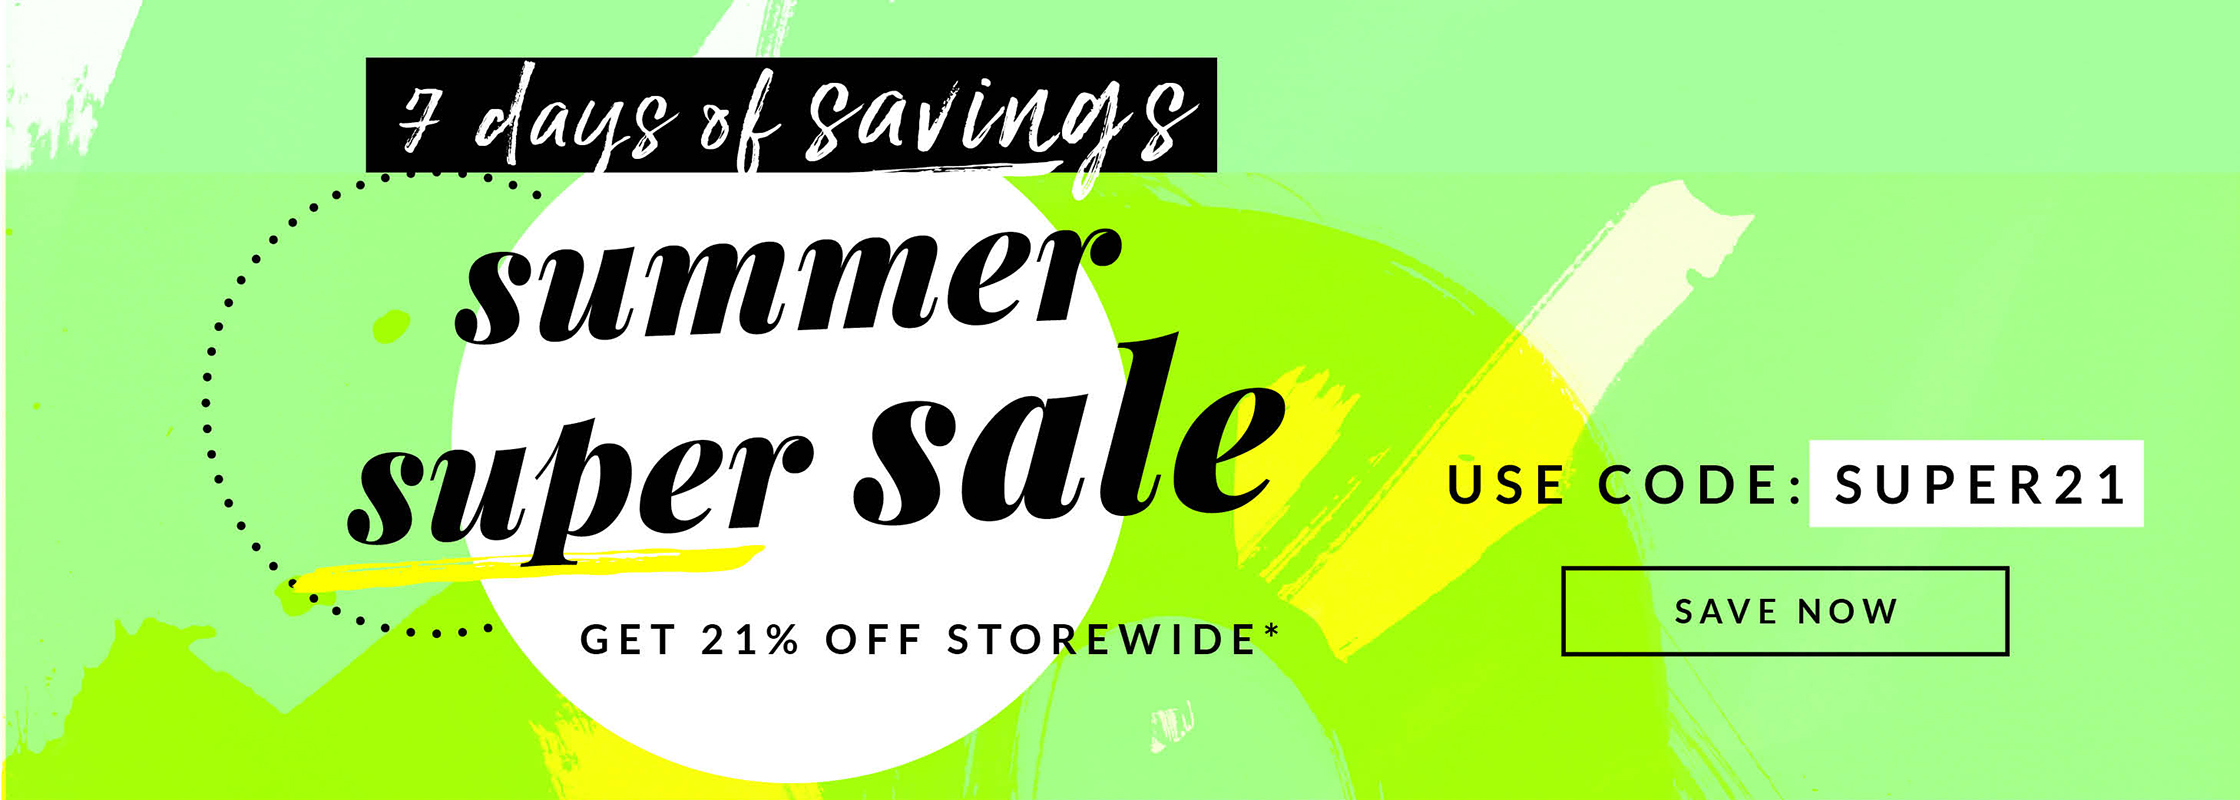 https://shop.naturallycurly.com/product_images/uploaded_images/summersale-mobile.jpg